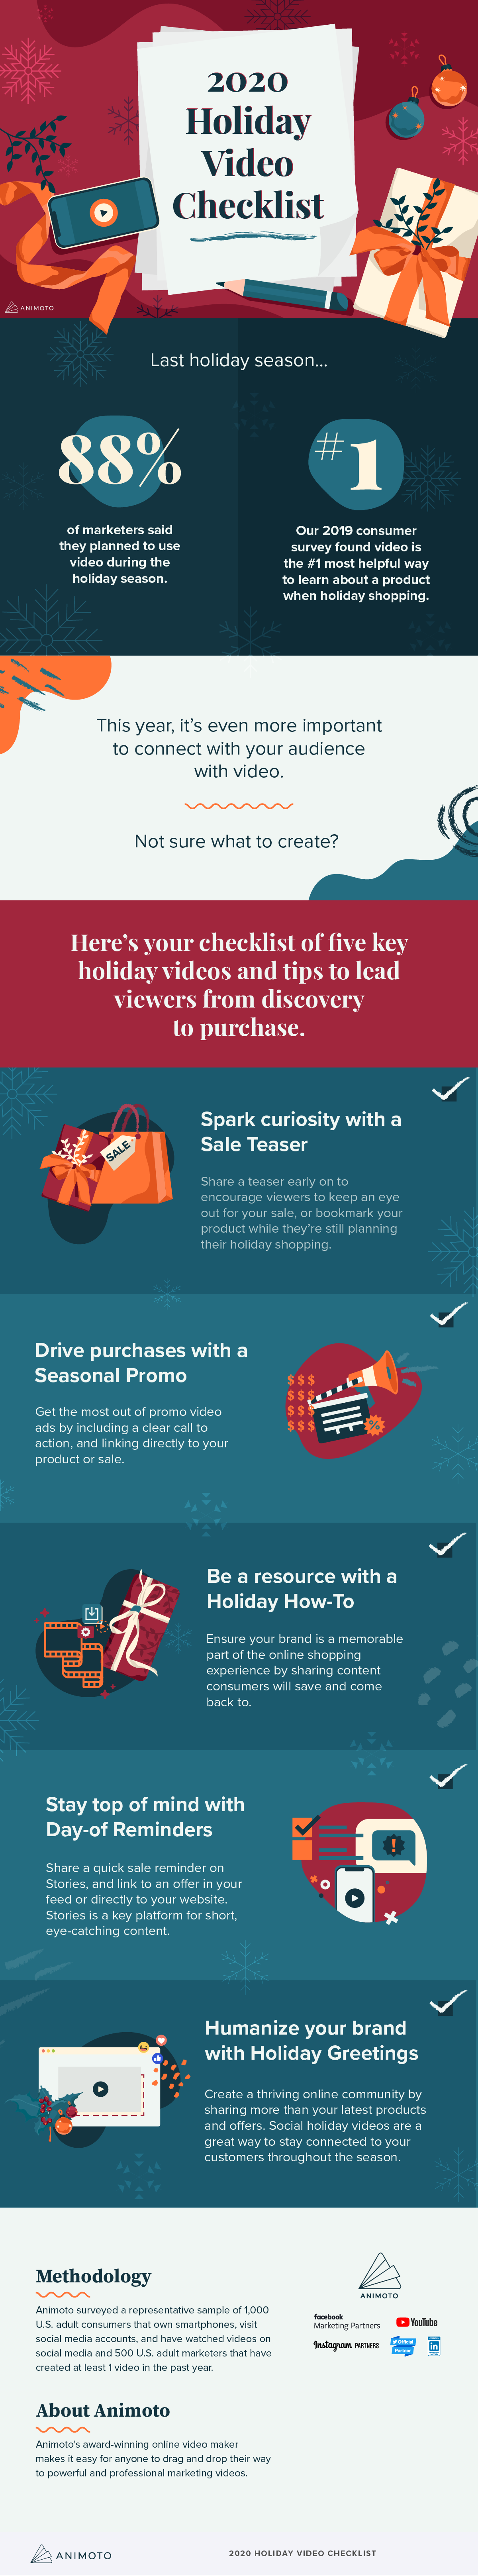 Infographic with ways to use vdeo content in holiday campaigns.